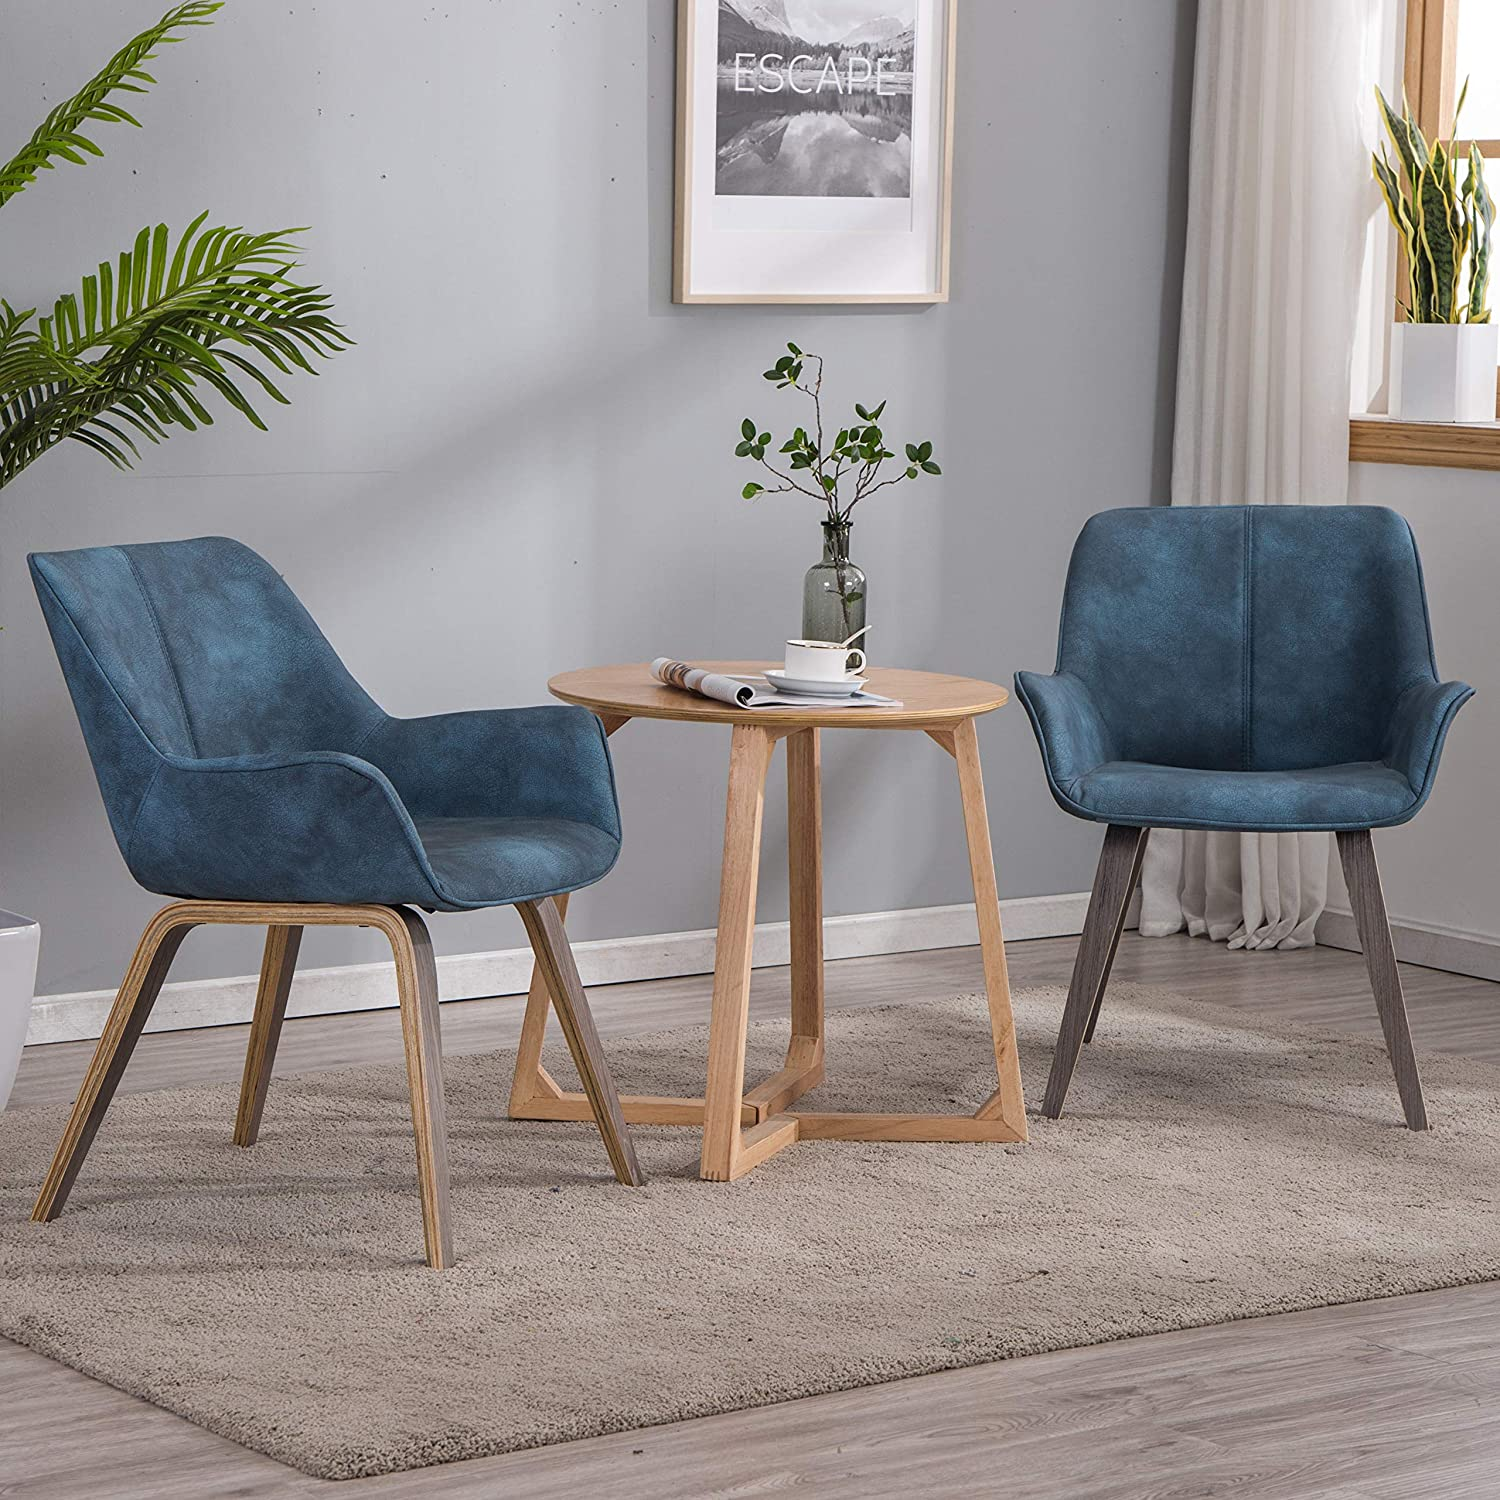 YEEFY Blue Leather and Wood Oak Living Room Chairs Upholstered Accent  Chairs Set of 9 (Blue)